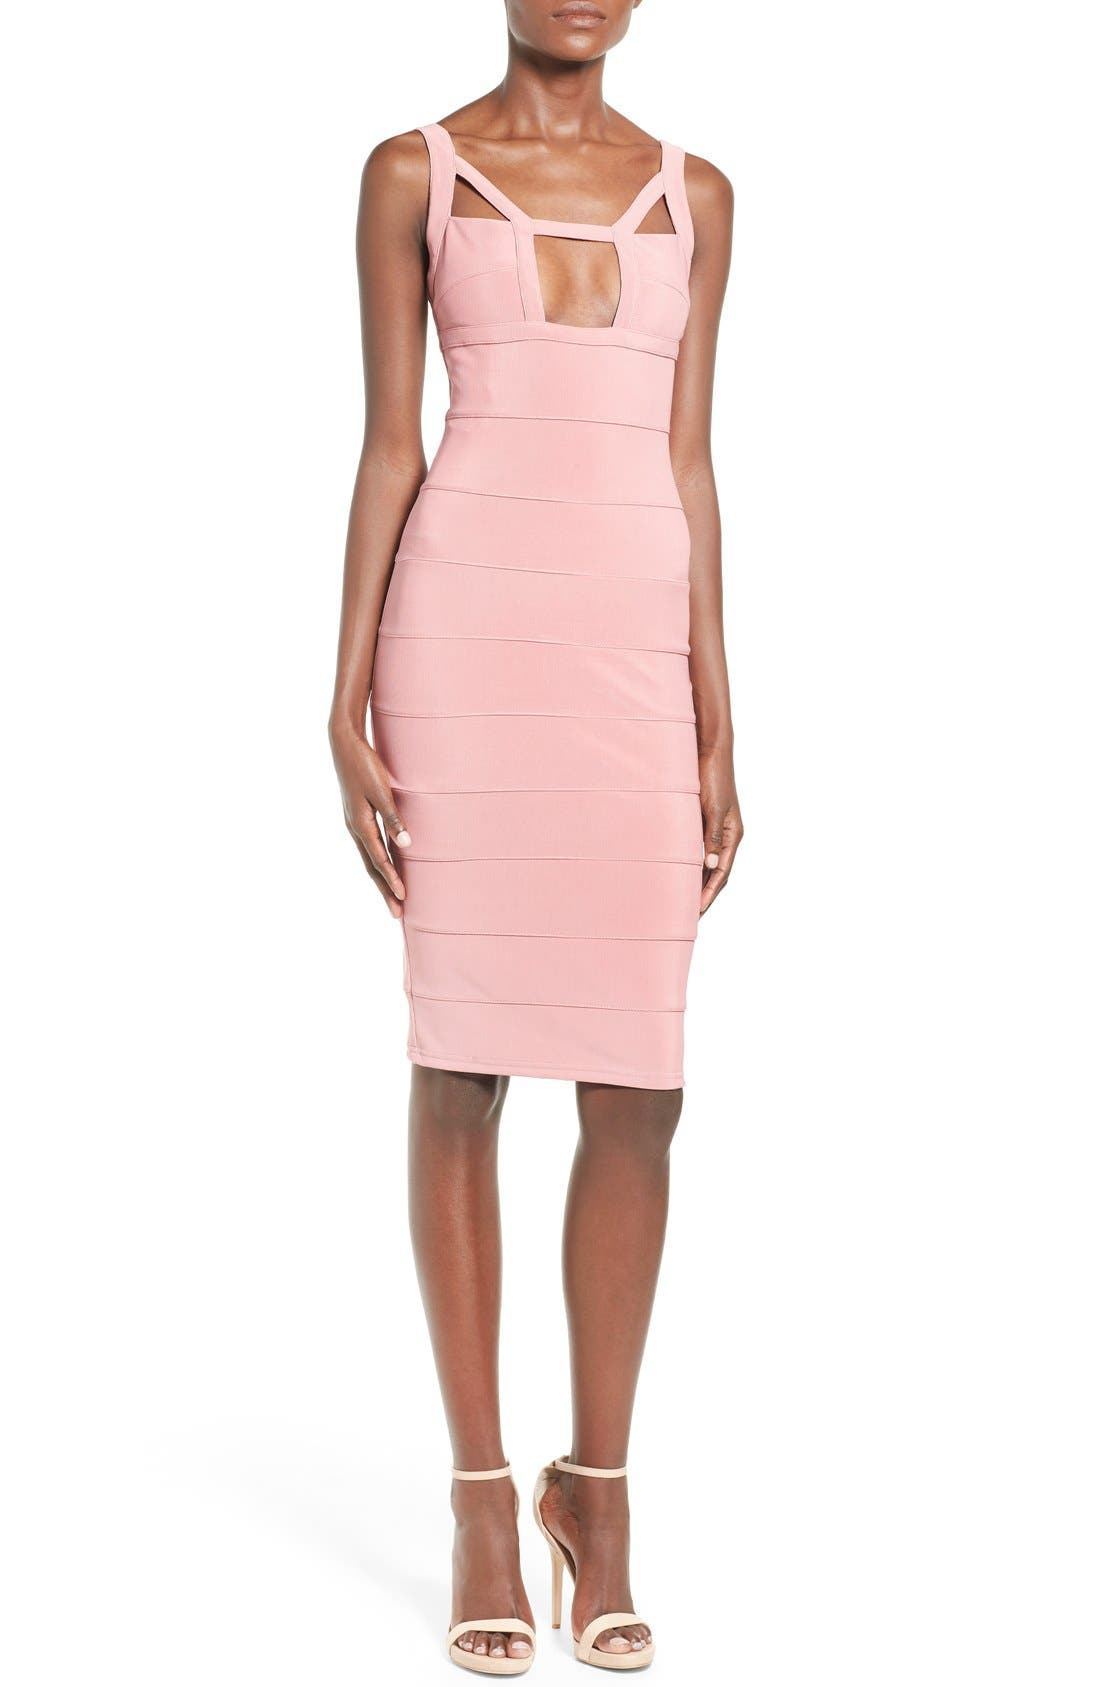 Alternate Image 1 Selected - Missguided Geo Cutout Bandage Dress